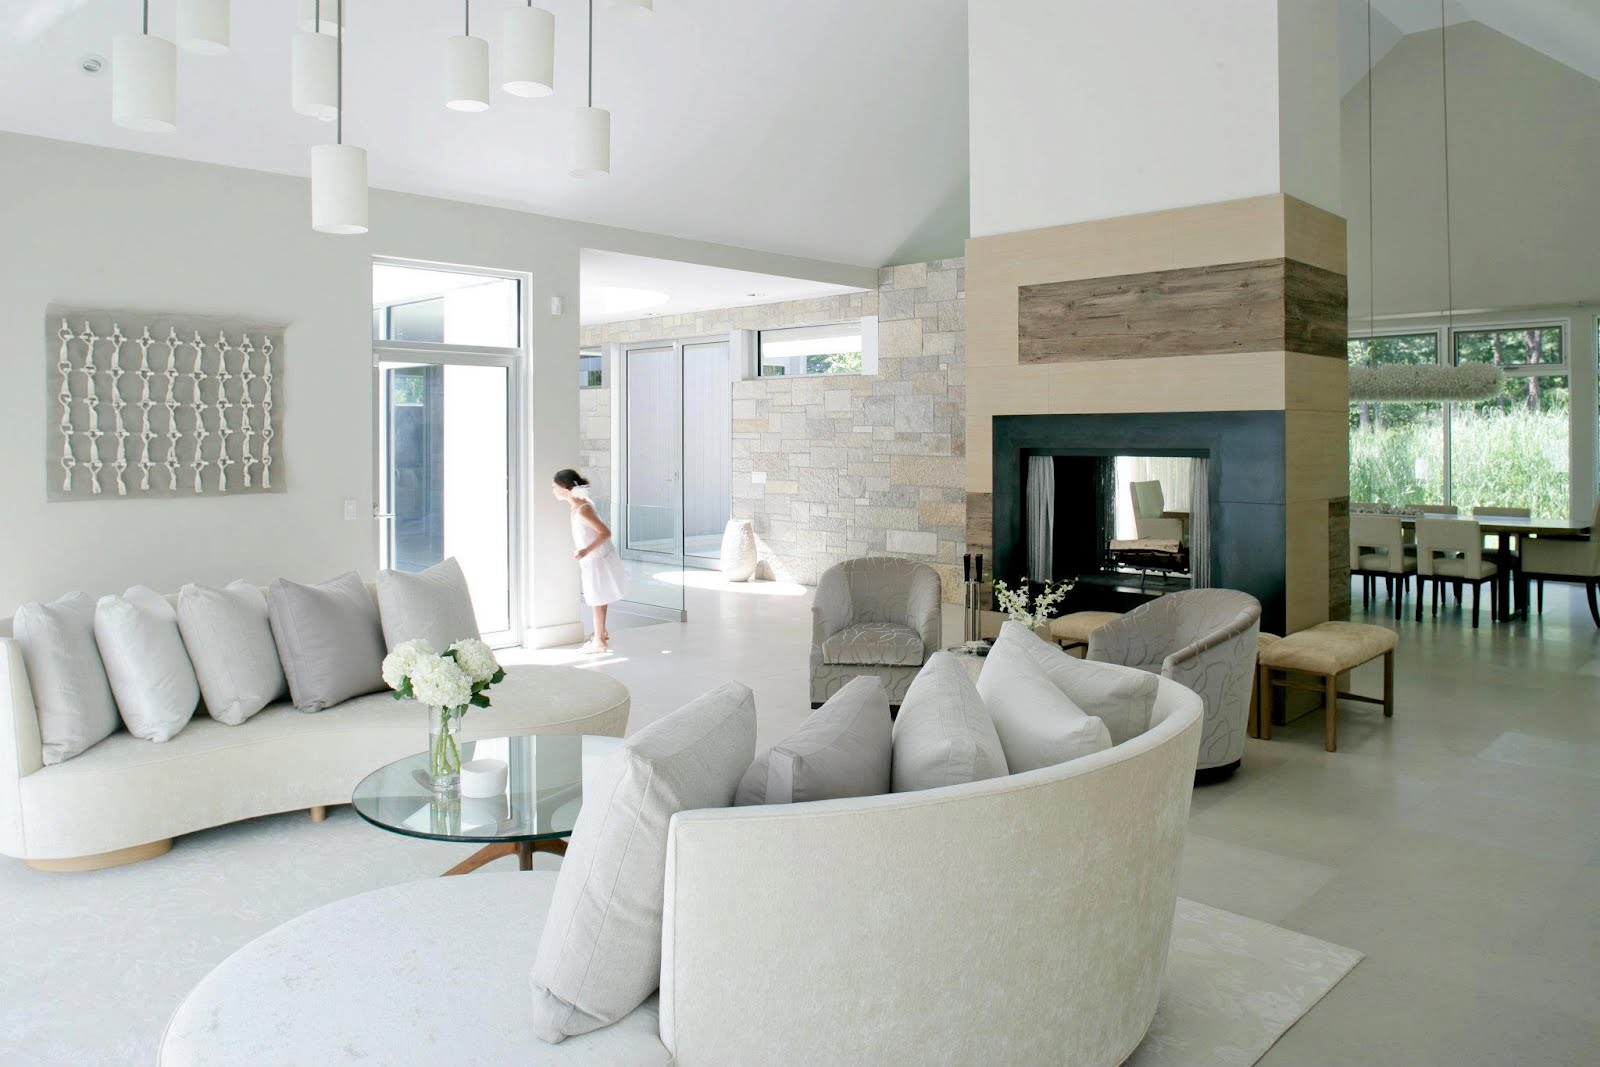 SEE THIS HOUSE: WHITE ON WHITE IN A MODERN HAMPTONS